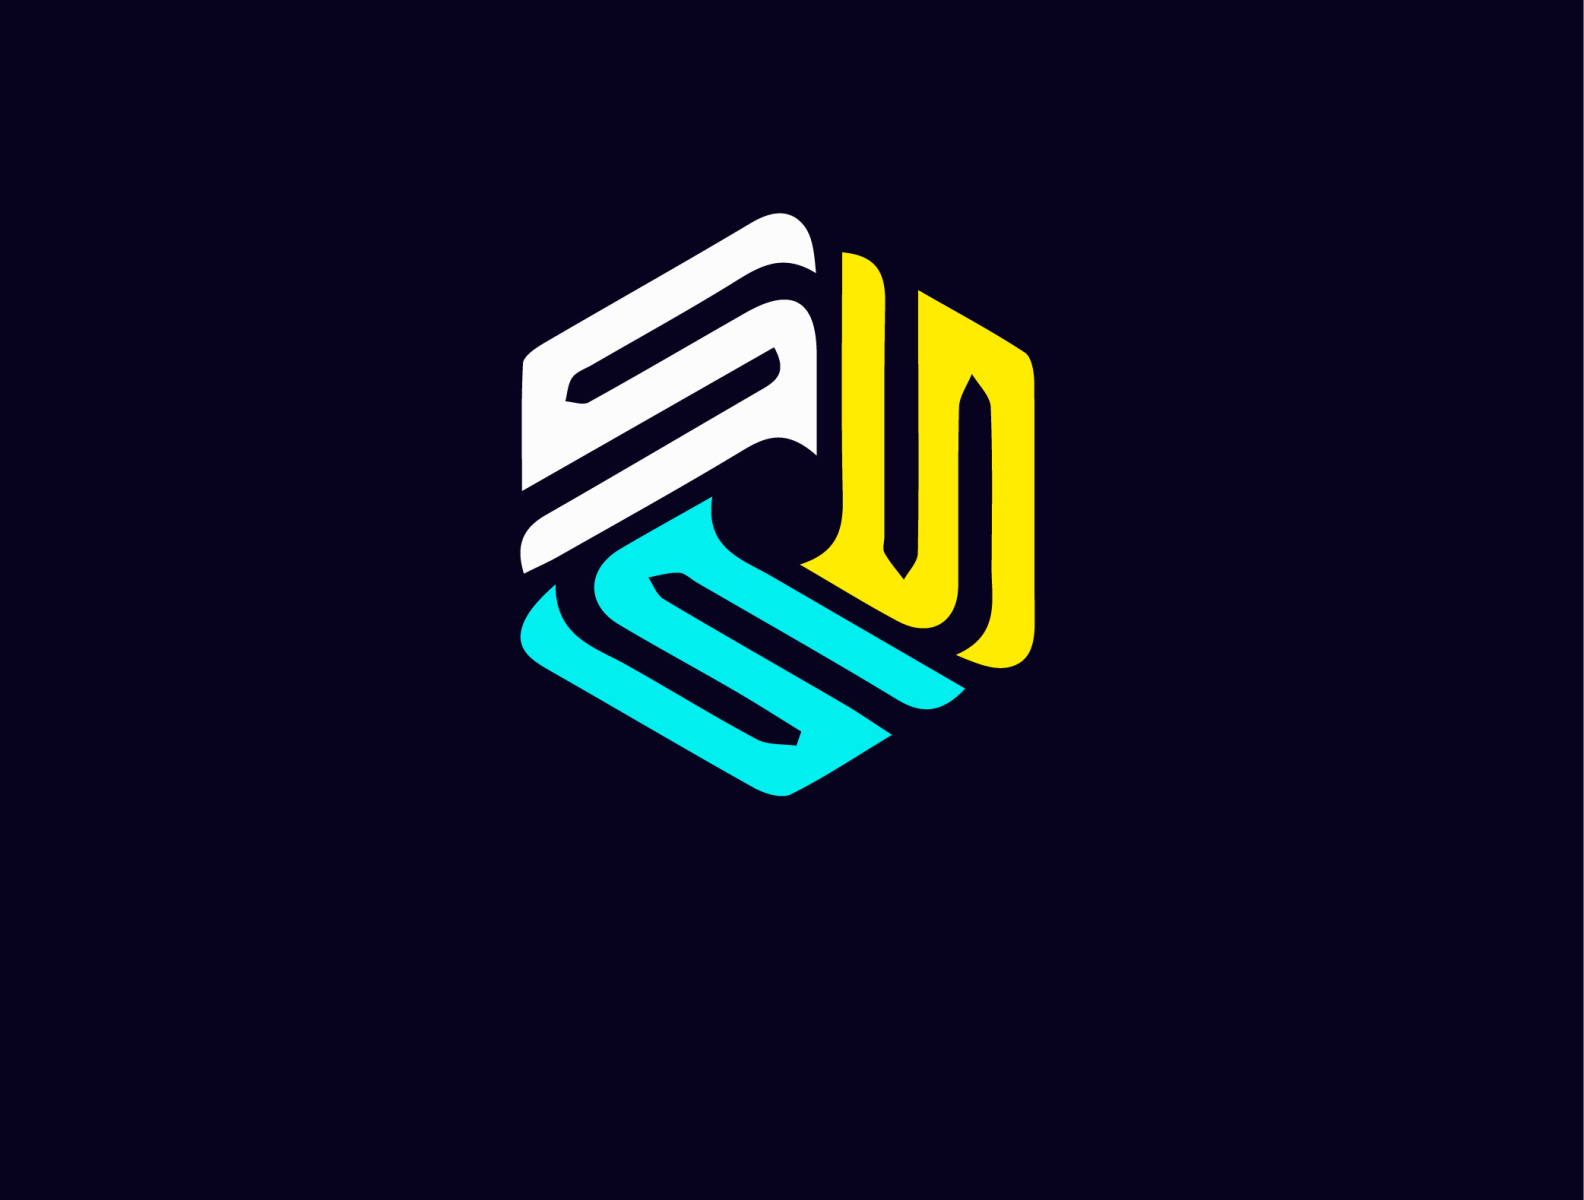 SSS LOGO CONCEPT by Mohammed Elias on Dribbble.